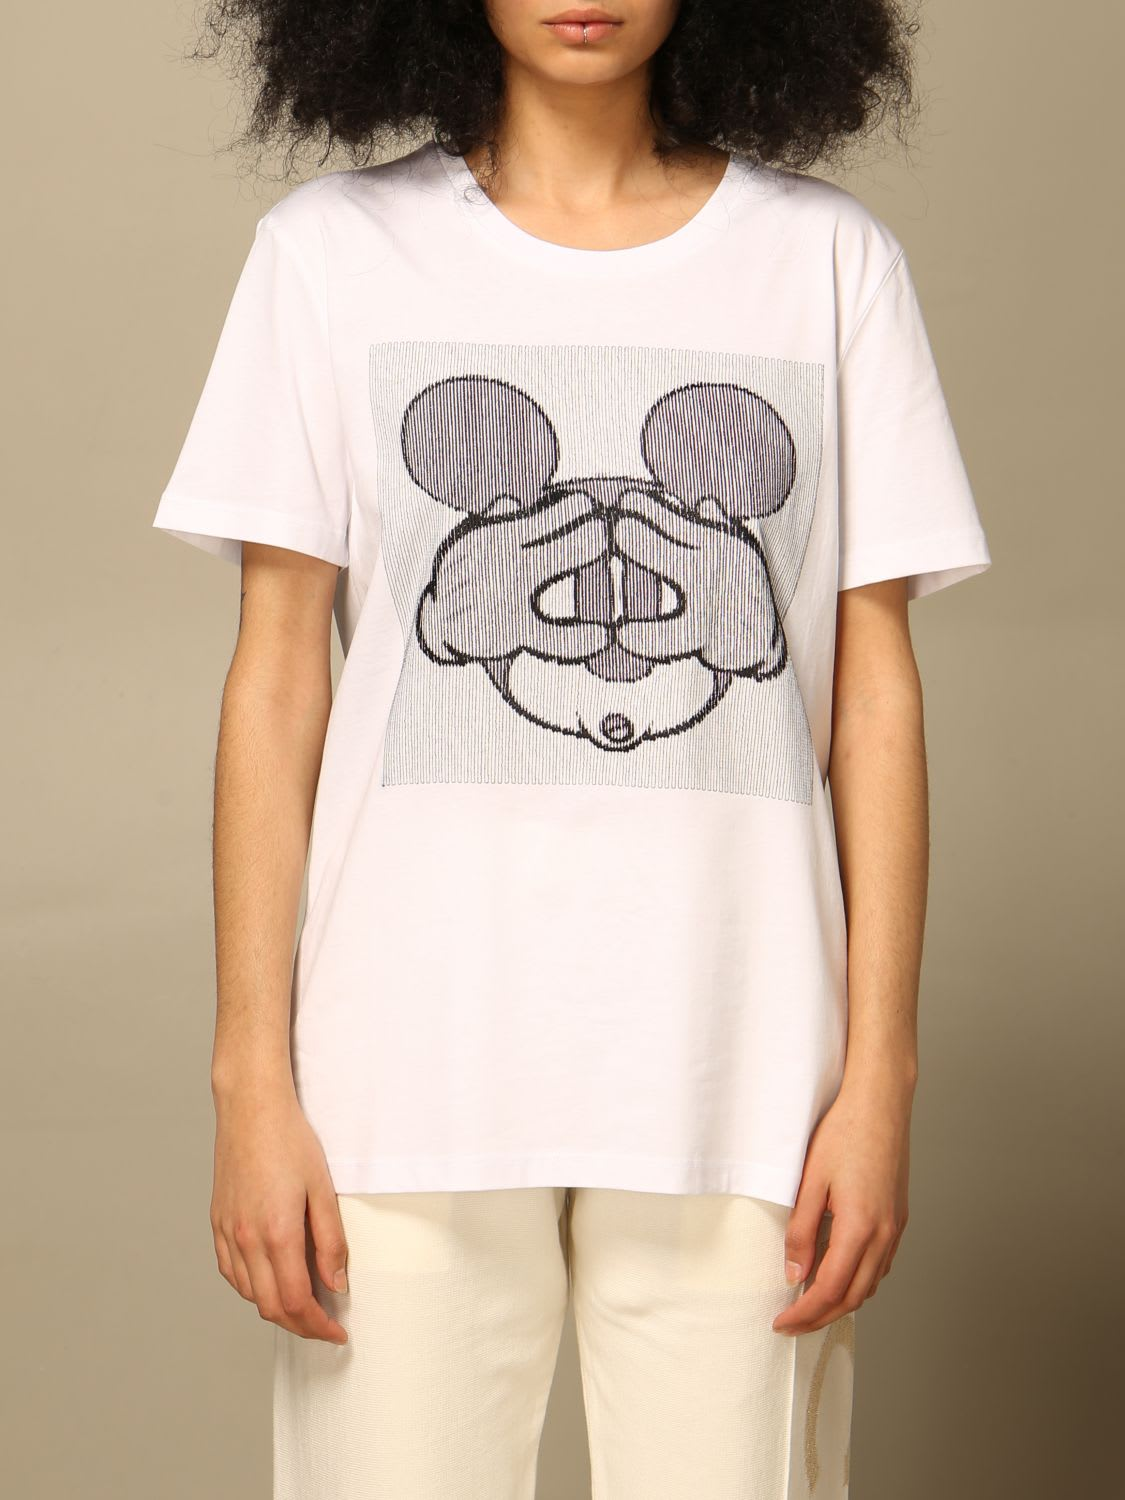 Iceberg T-shirt Iceberg T-shirt With Mickey Mouse